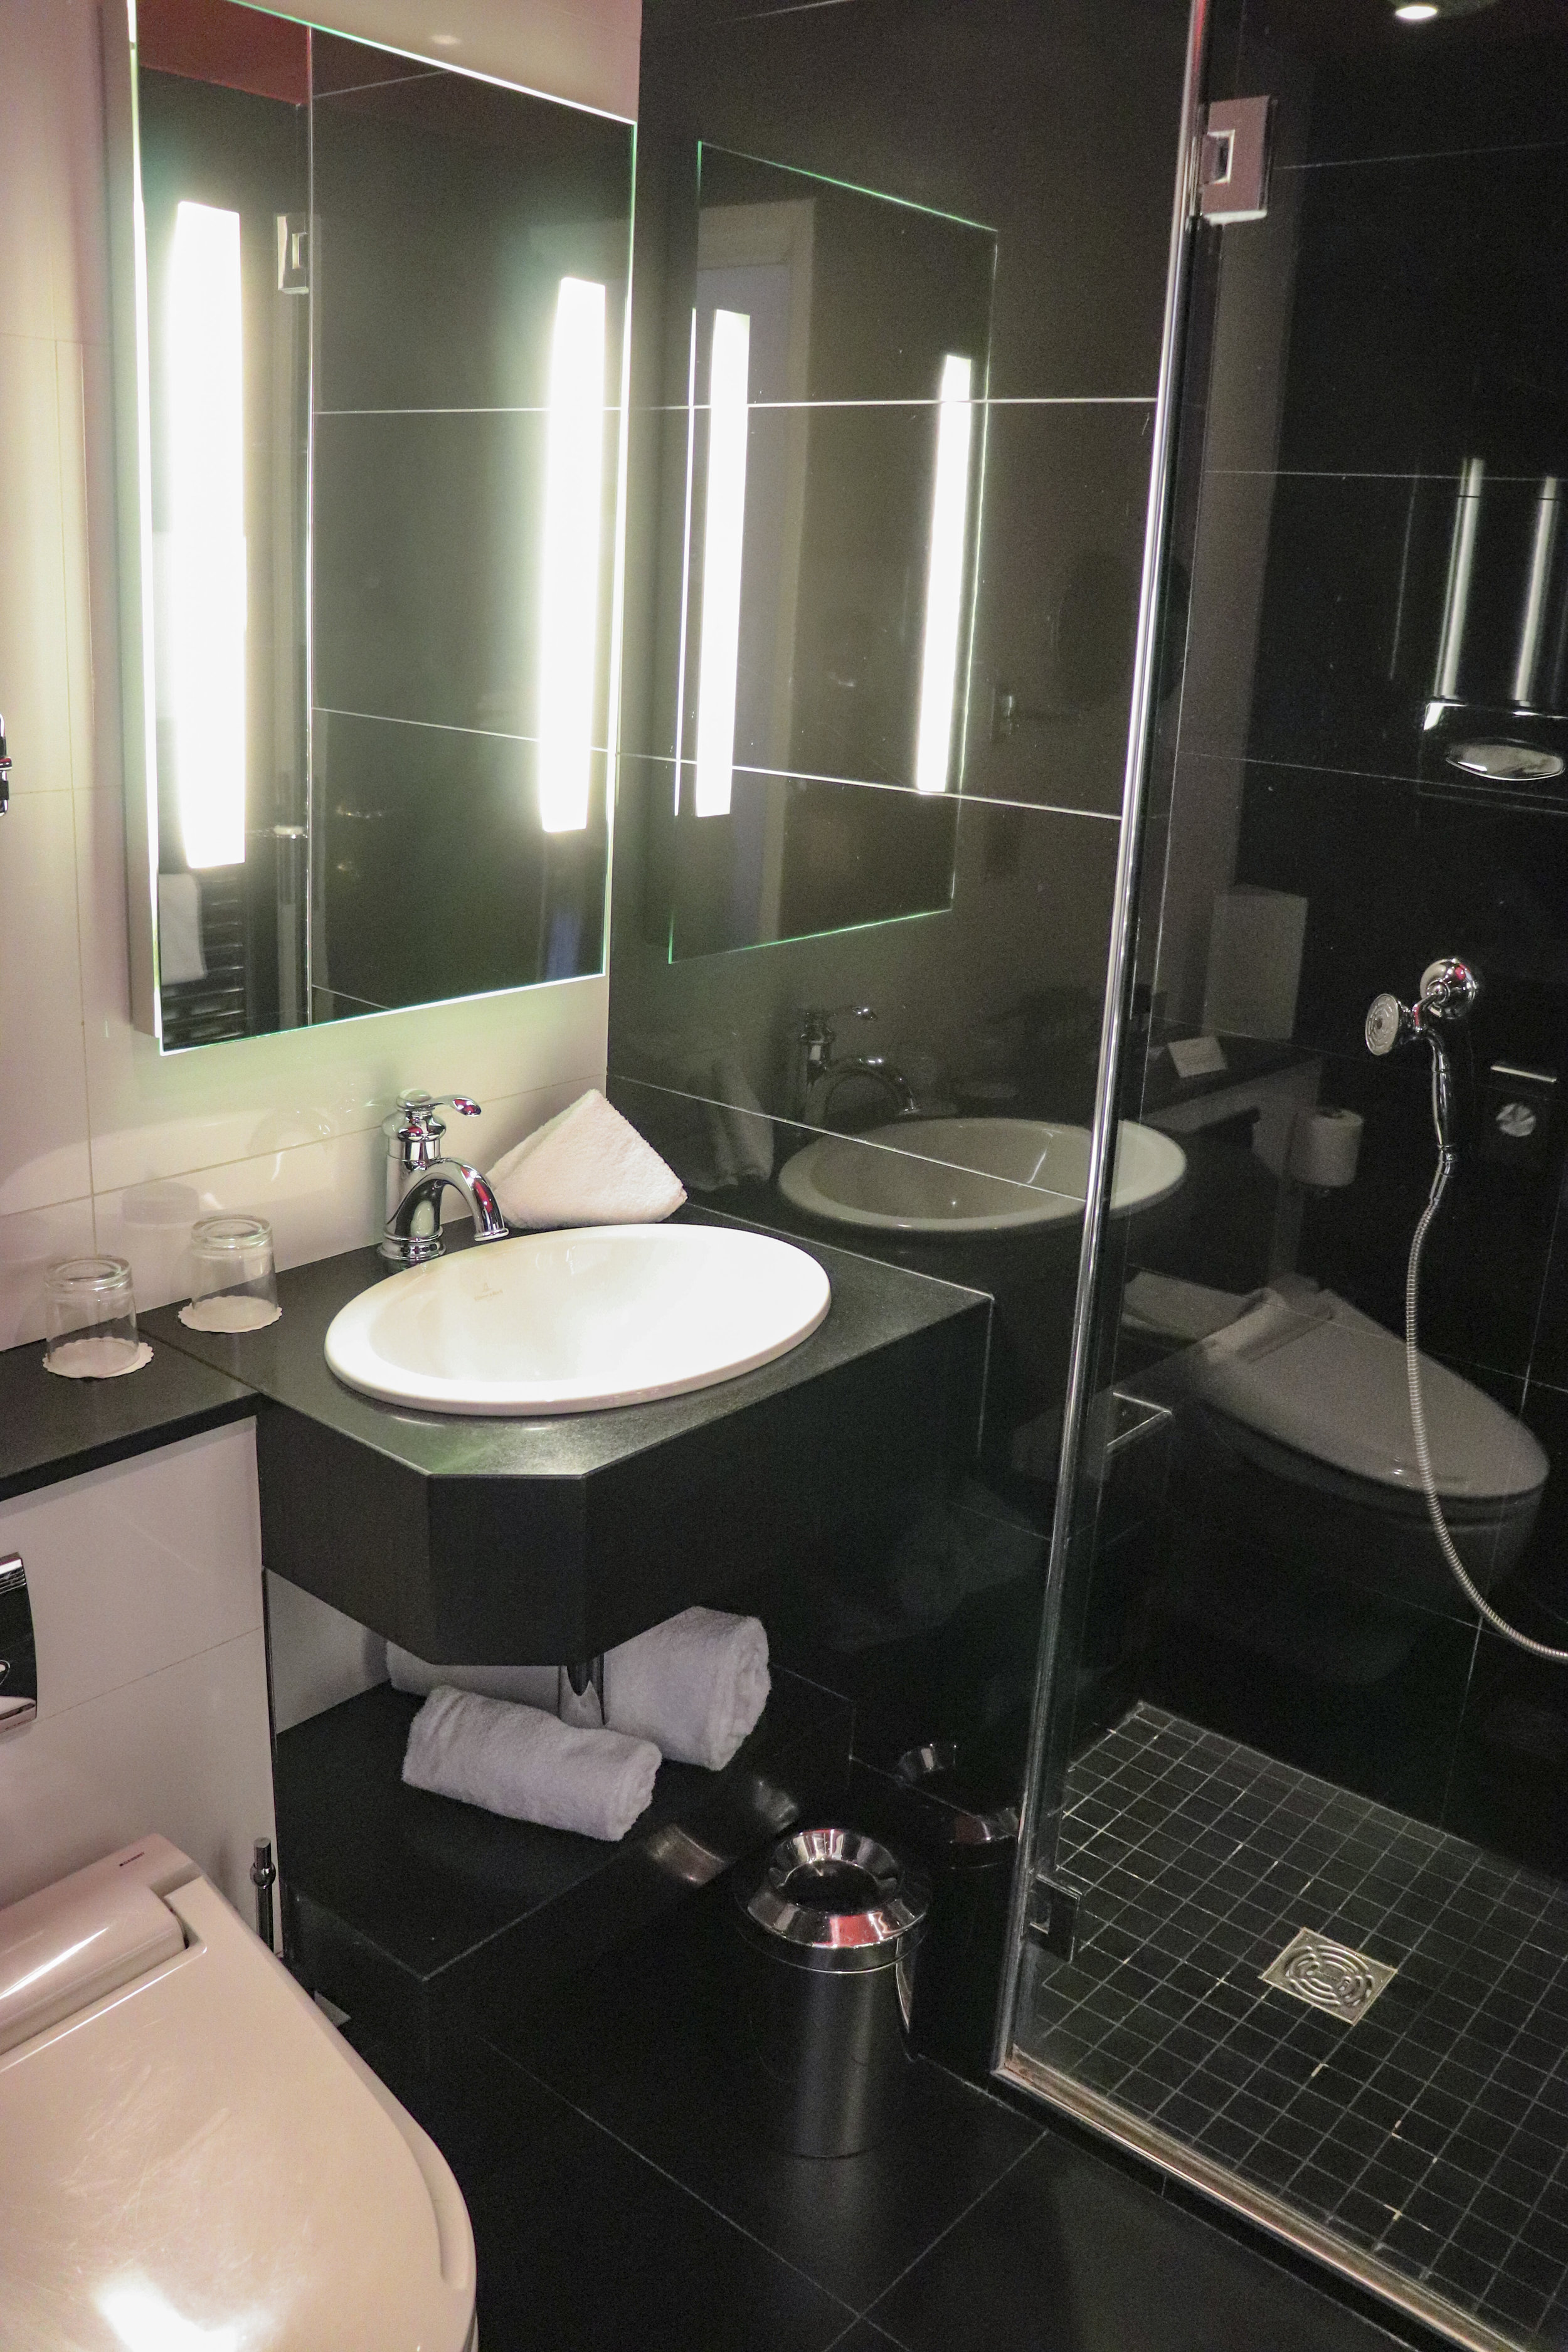 A view of the bathroom area.